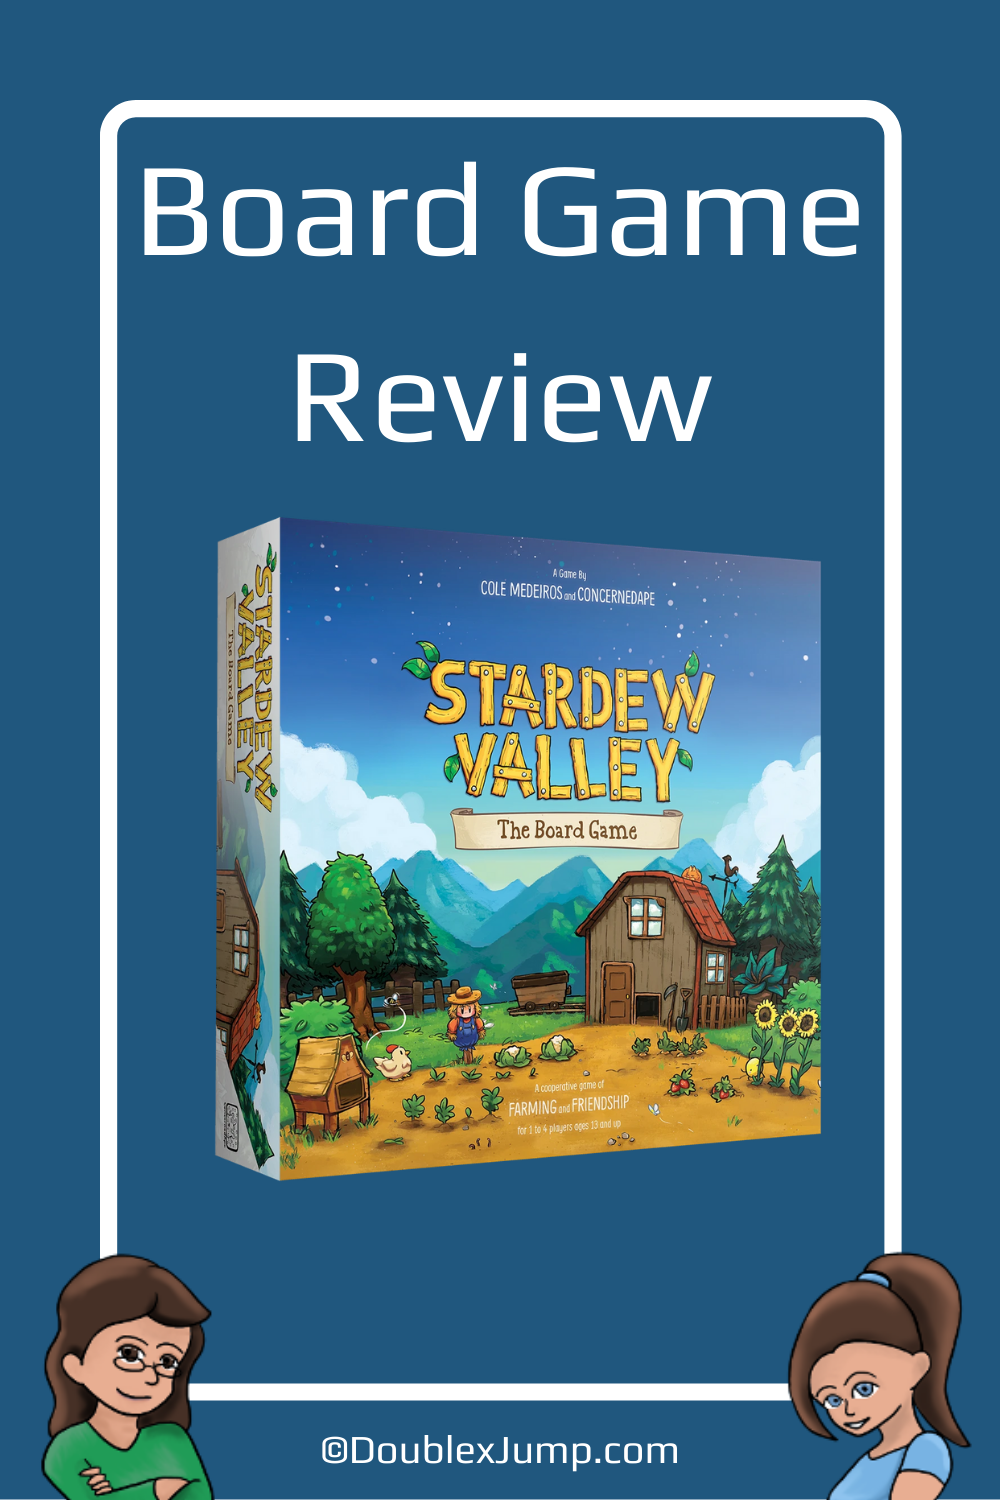 Stardew Valley: The Board Game | Review | Board Game Review | Stardew Valley | Gaming | DoublexJump.com